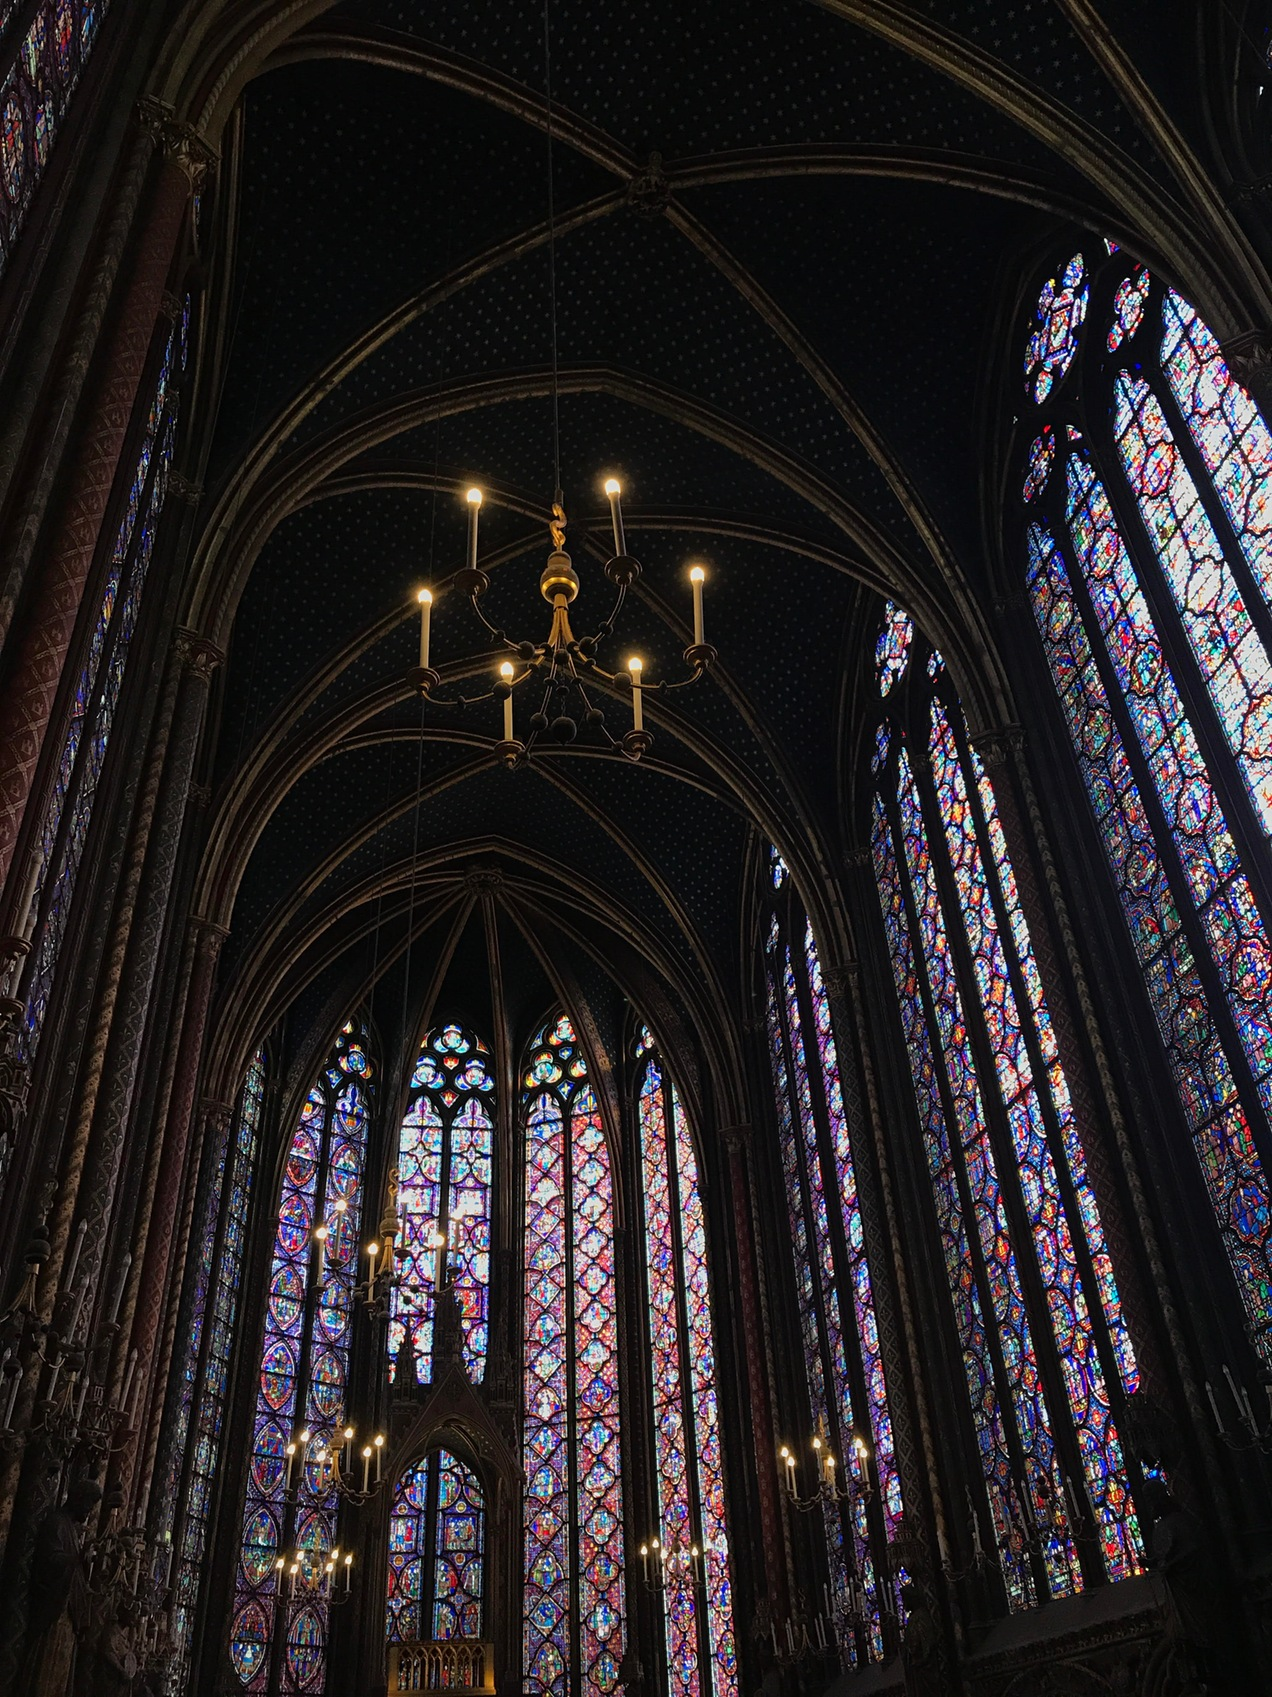 Stained Glass Windows inside Saint Chapelle